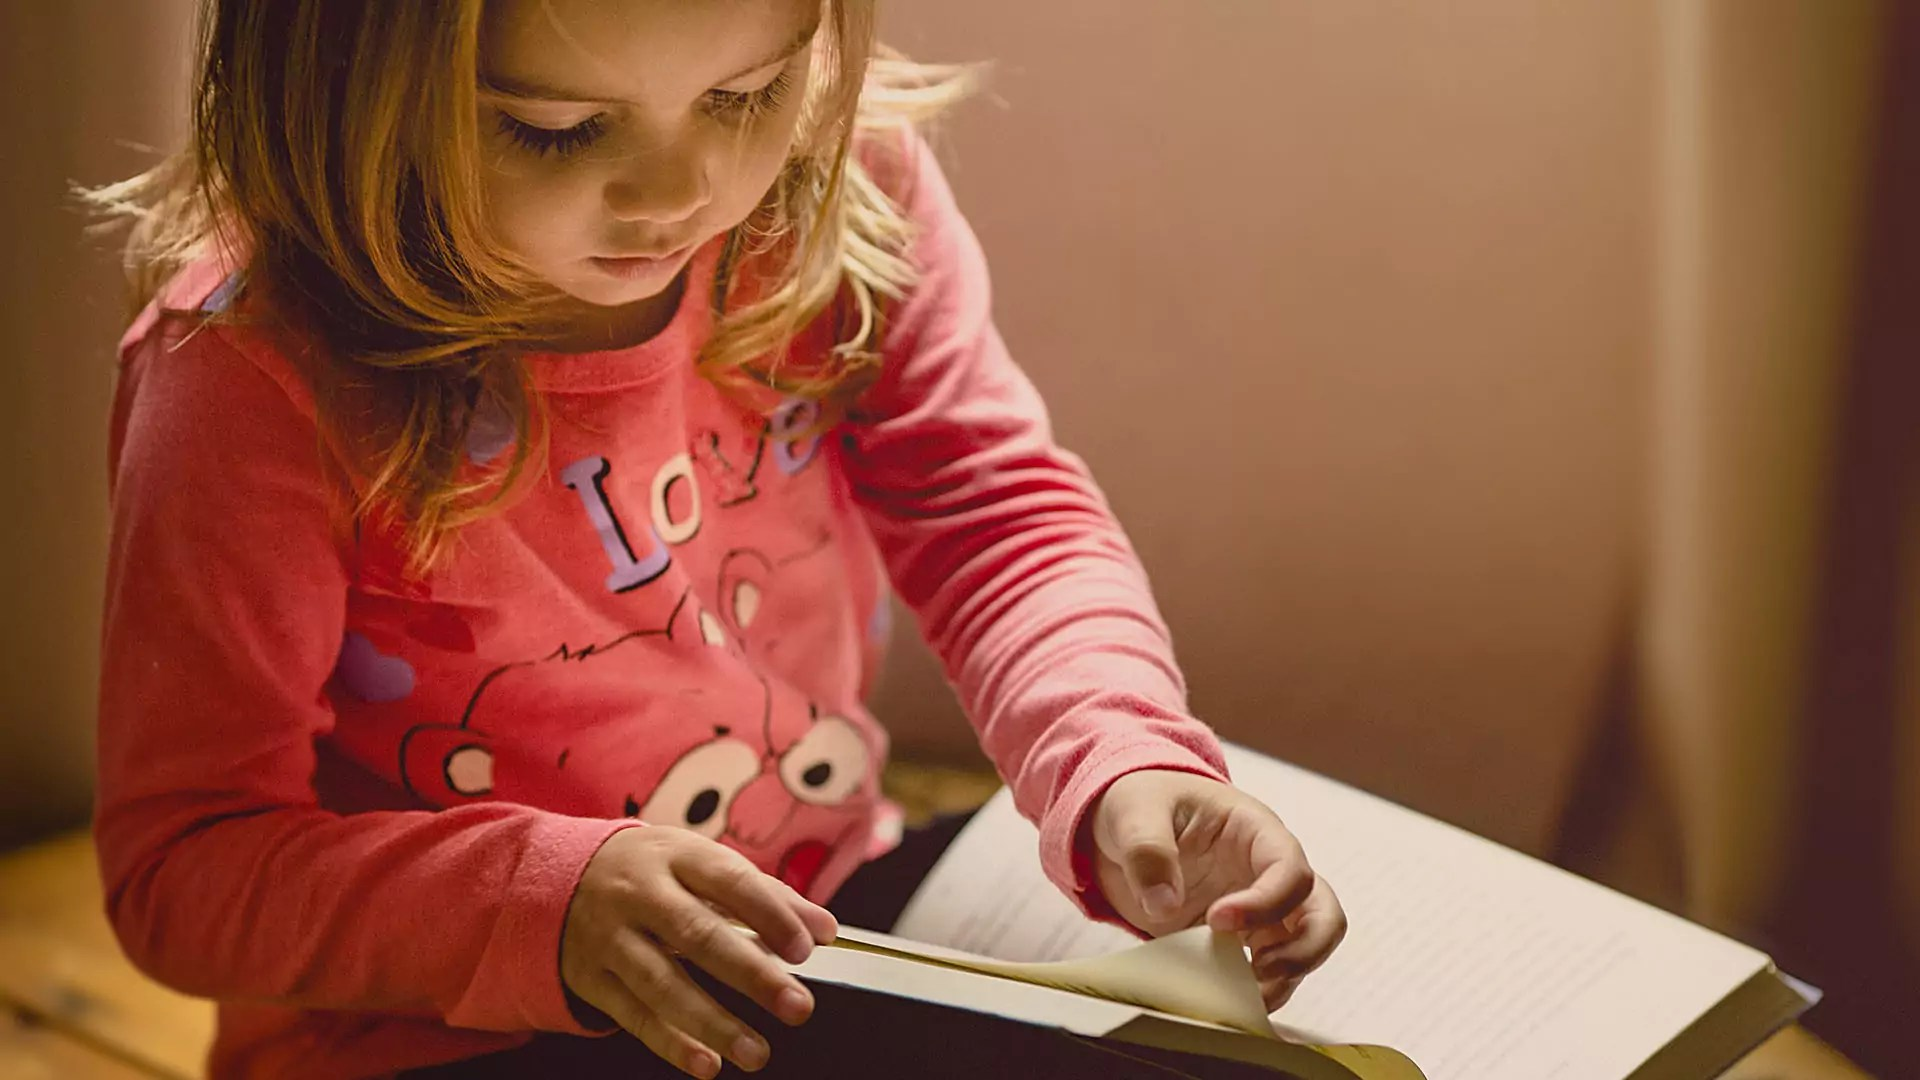 A small child flips through pages of a book.